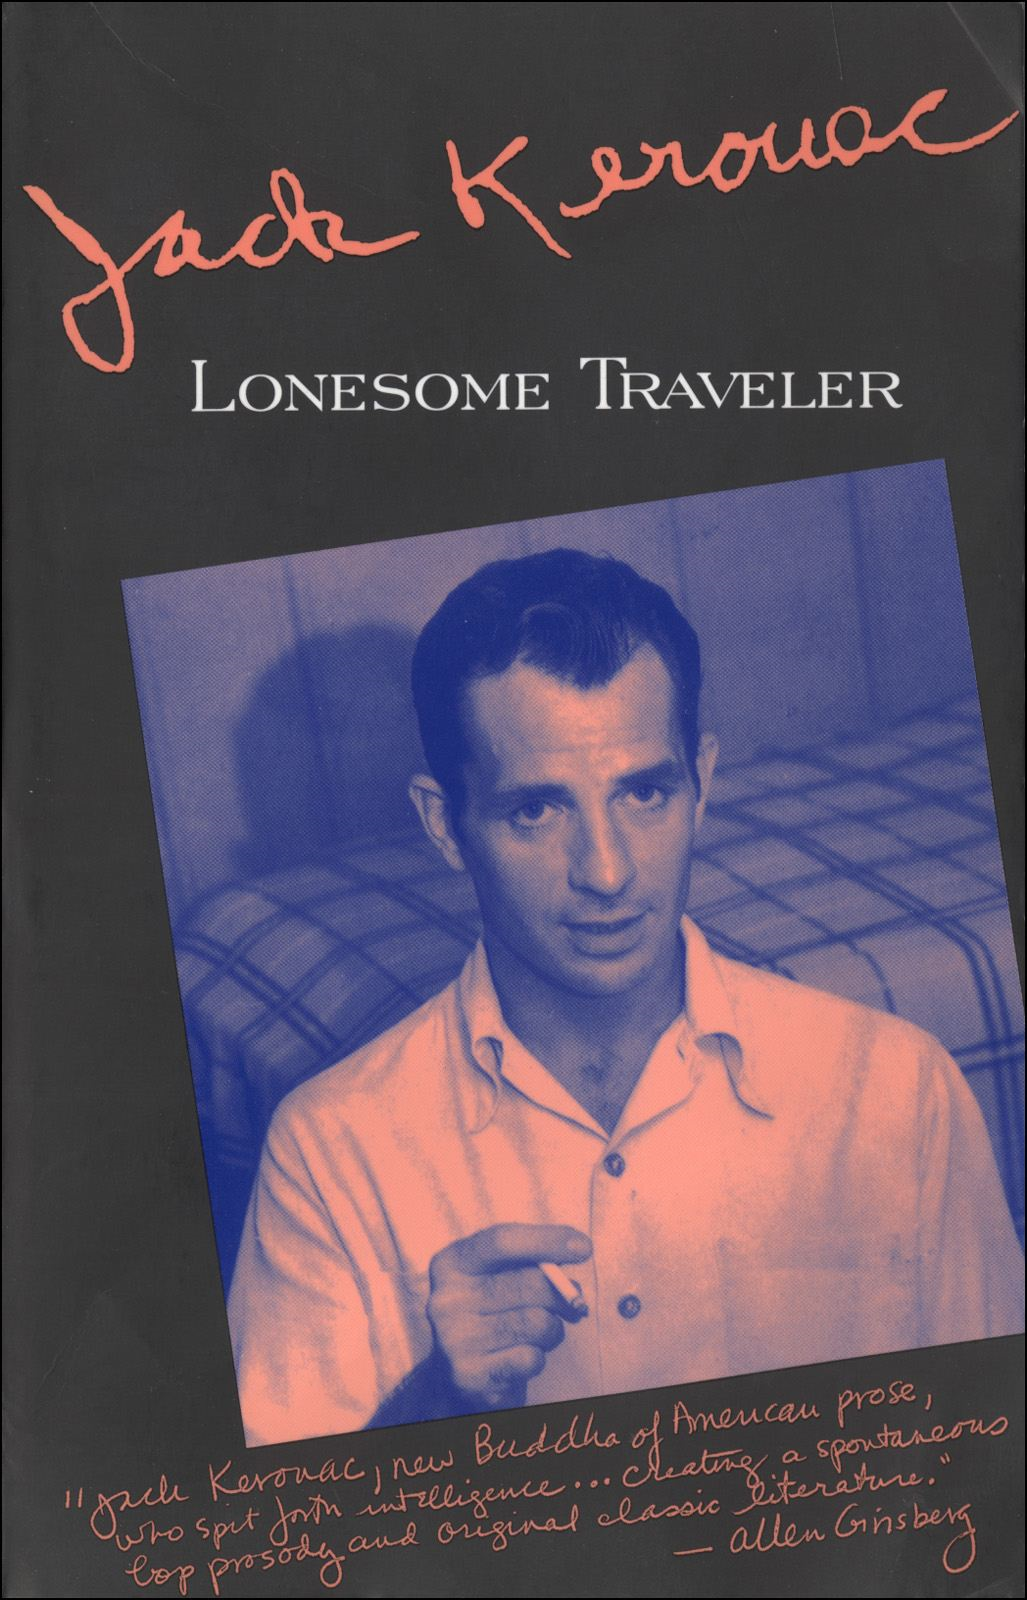 Lonesome Traveler By: Jack Kerouac